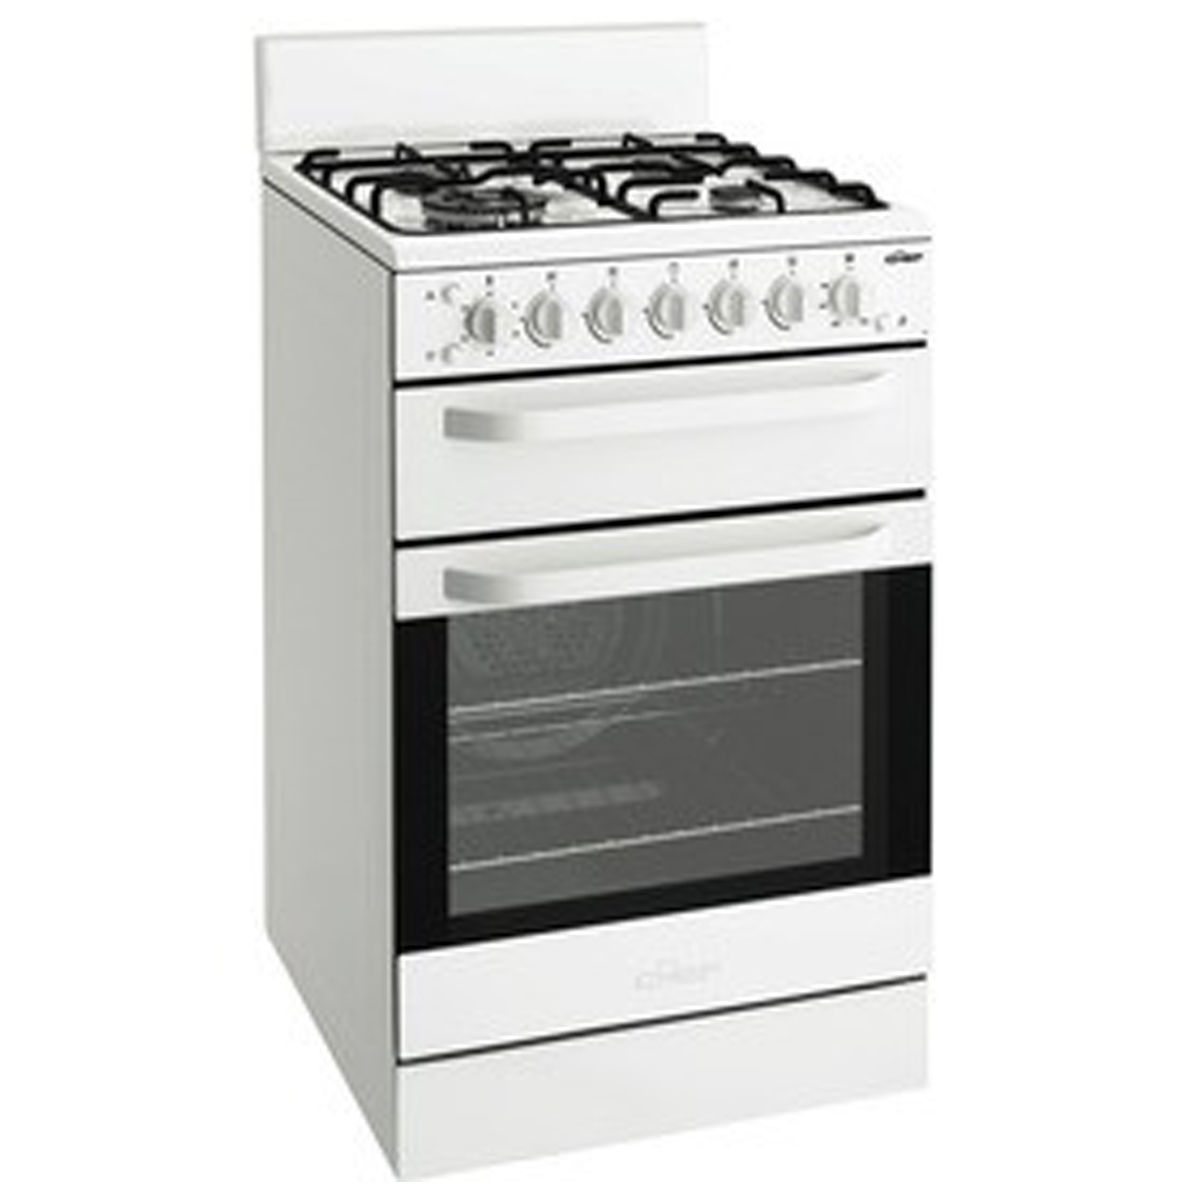 Chef CFG517WANG 54cm Freestanding Gas Oven